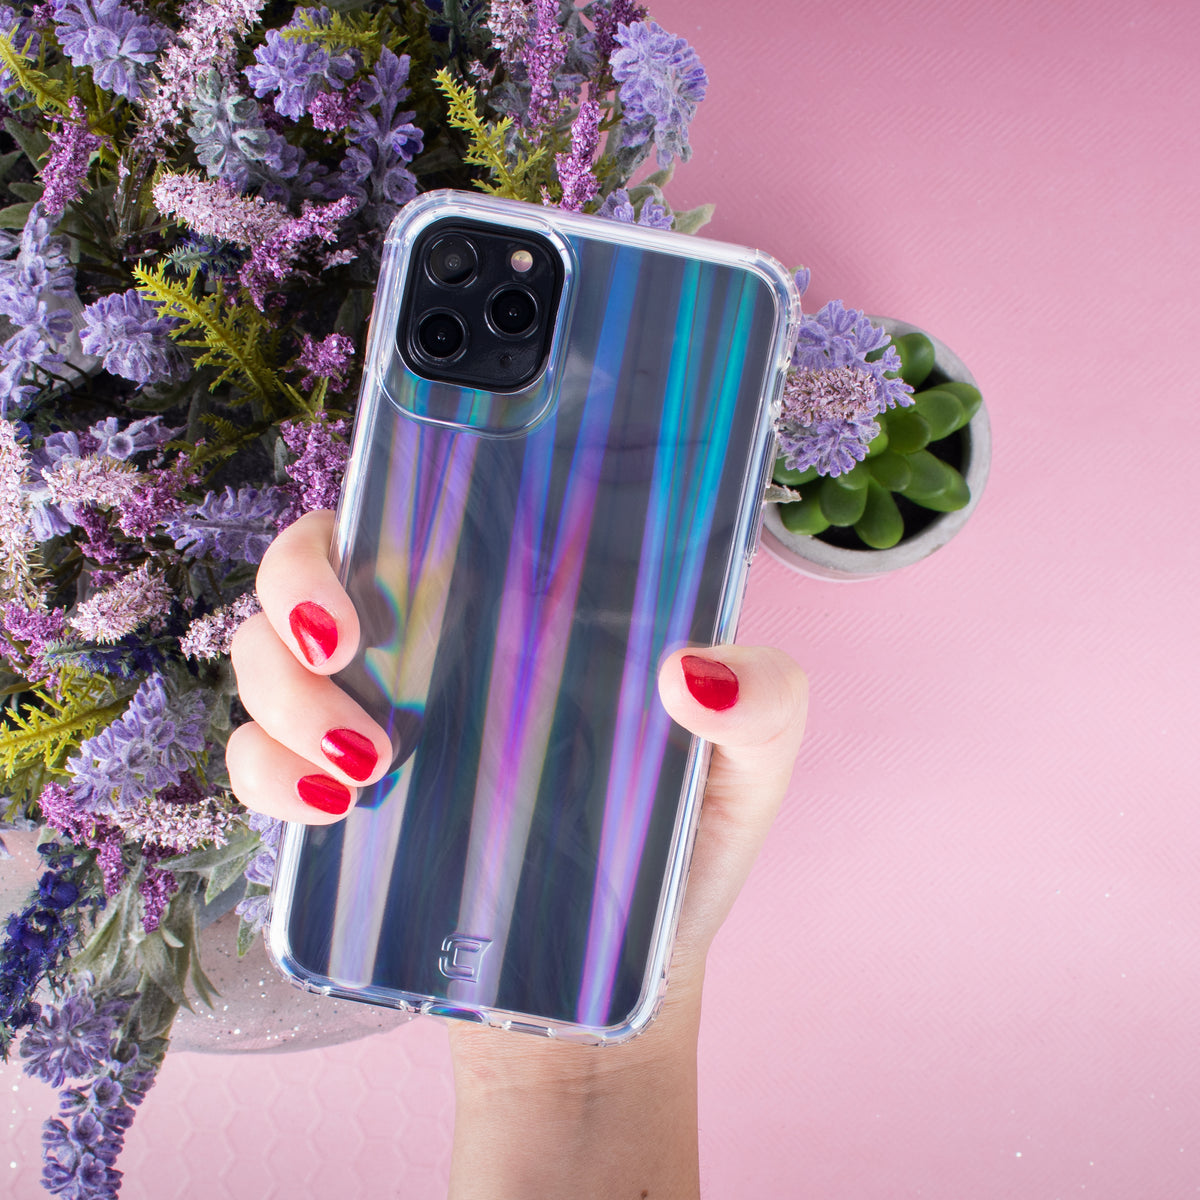 Prisma Swirled Iridescent Clear Tough Case - iPhone 11 Pro Max